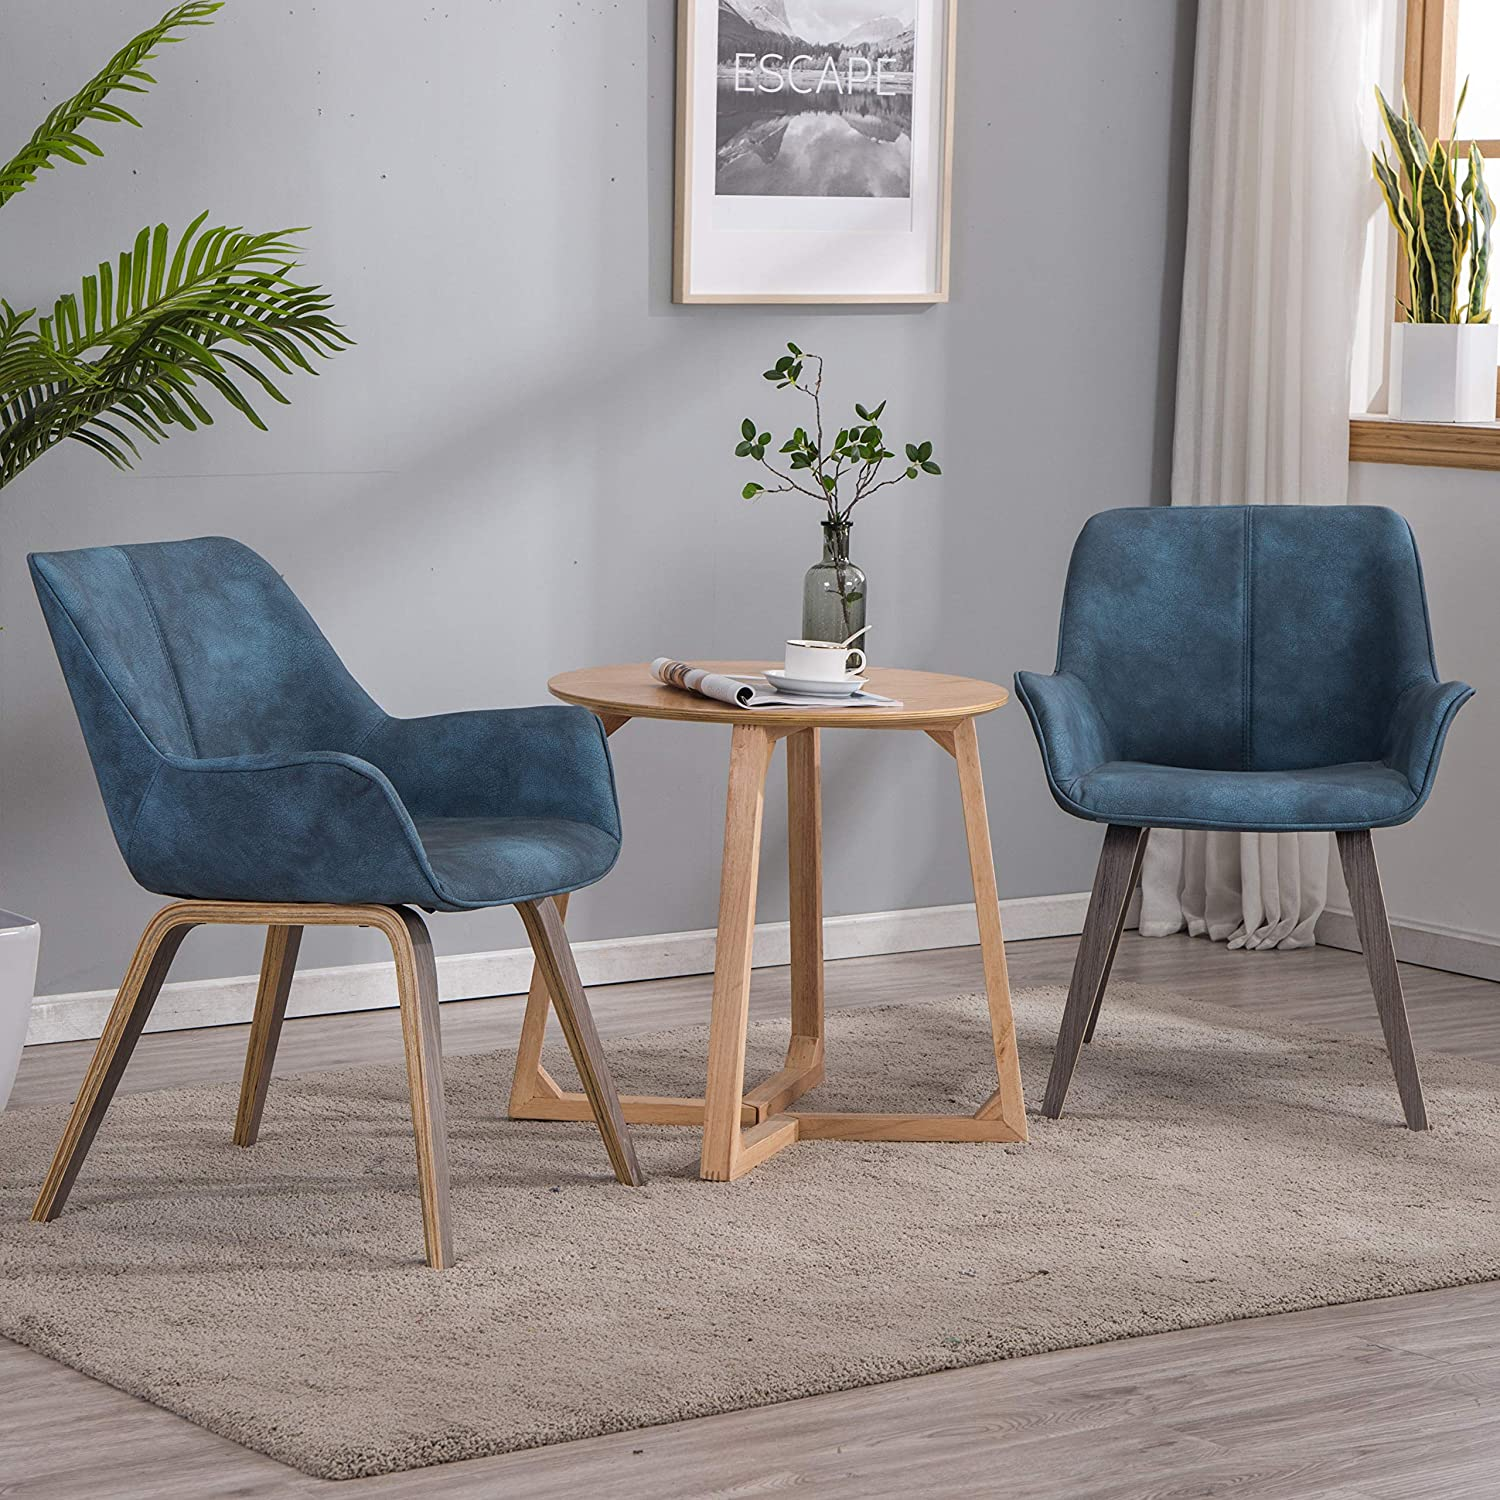 Amazon com yeefy modern dining chairs with arms tufted dining chairs set of 2 blue chairs